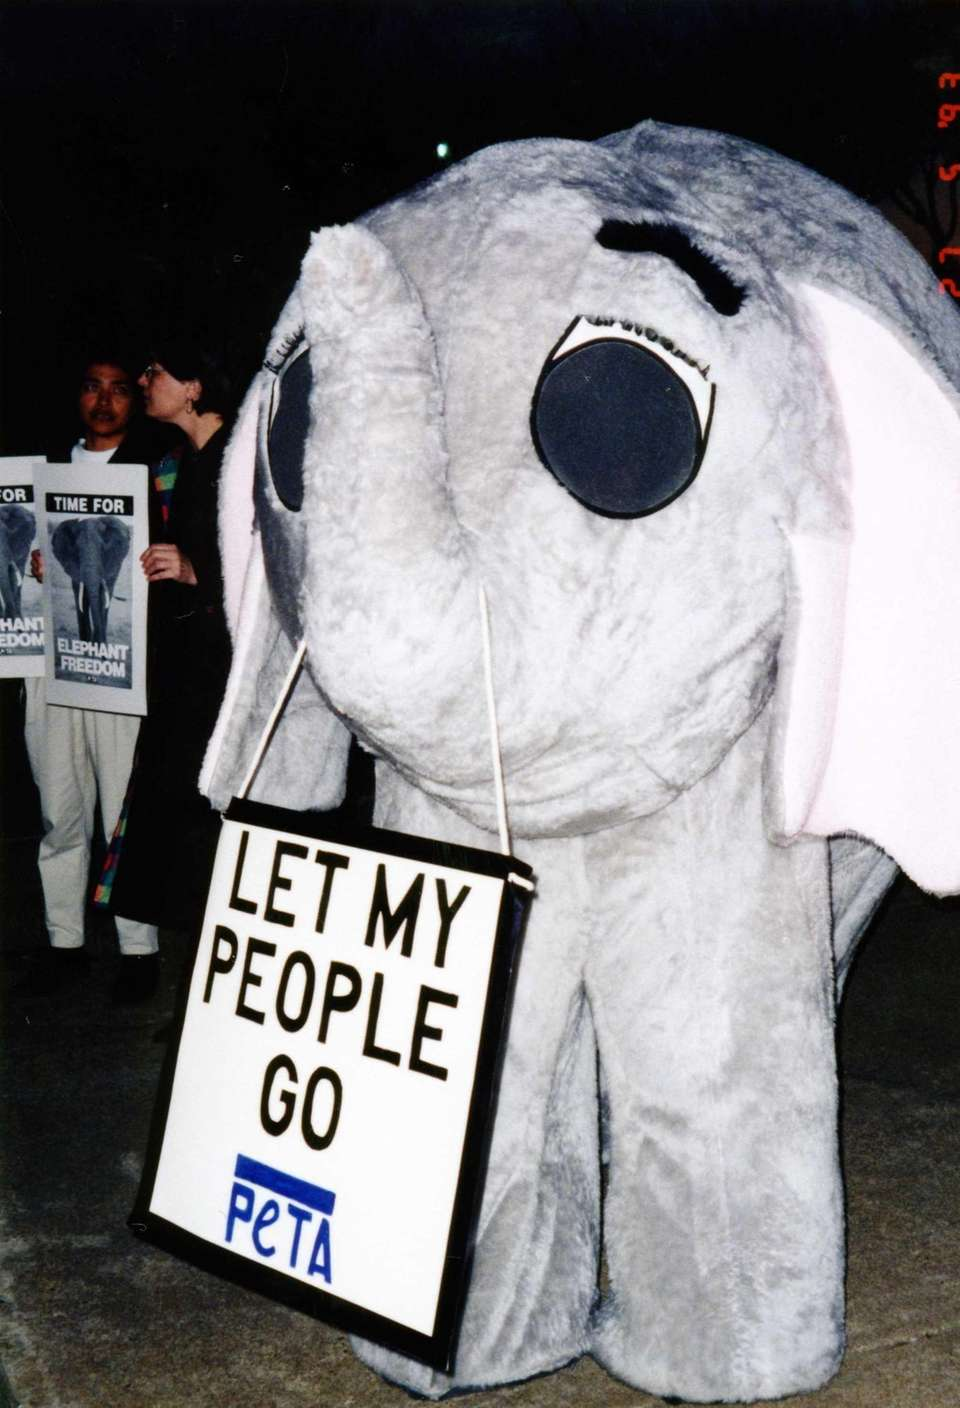 Elephant mascot costume protests circus use of elephants